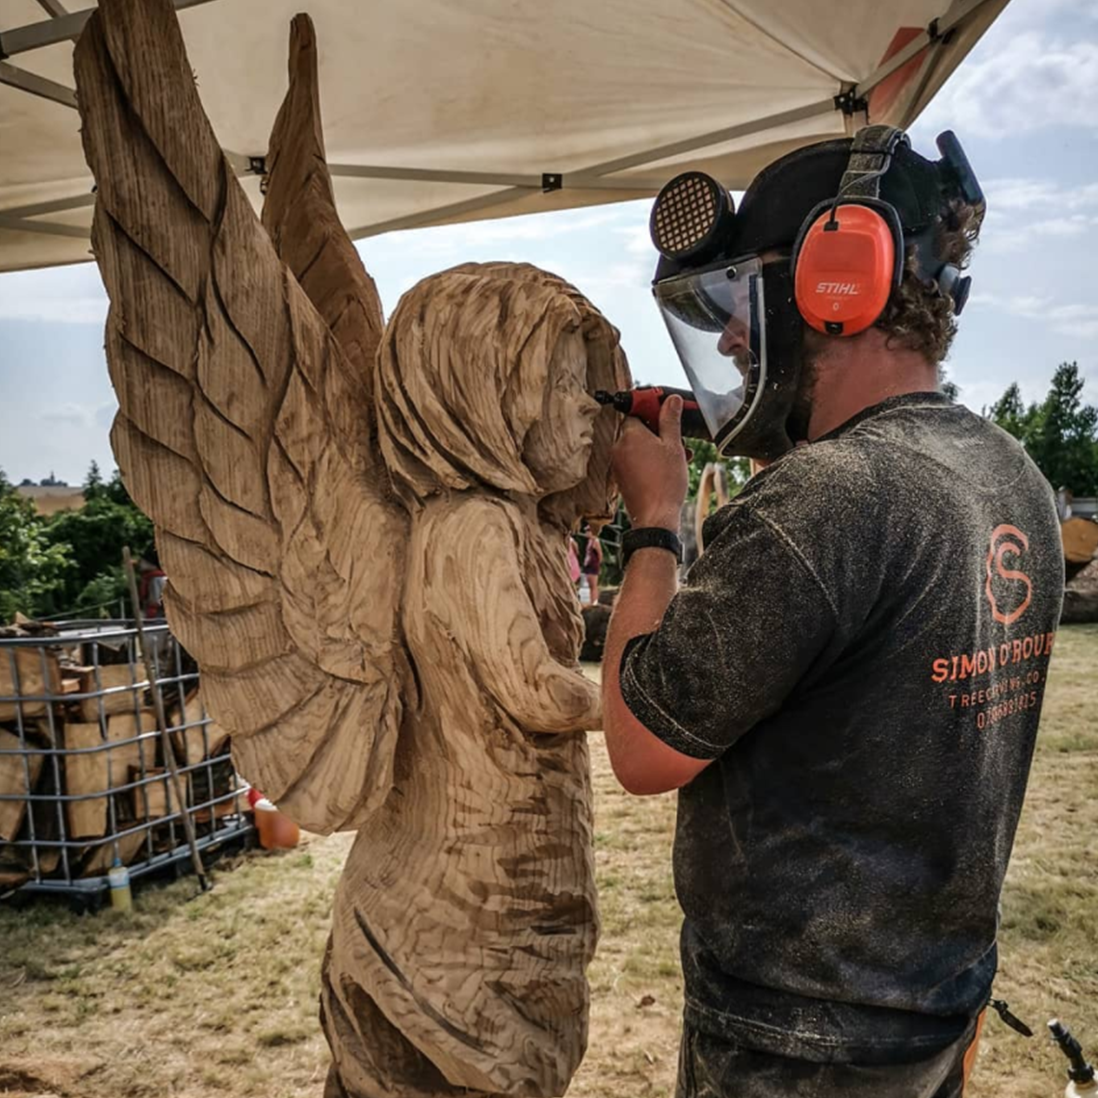 Sculptor Simon O'Rourke carving a wooden fairy at the Englihs Open CHainsaw competition